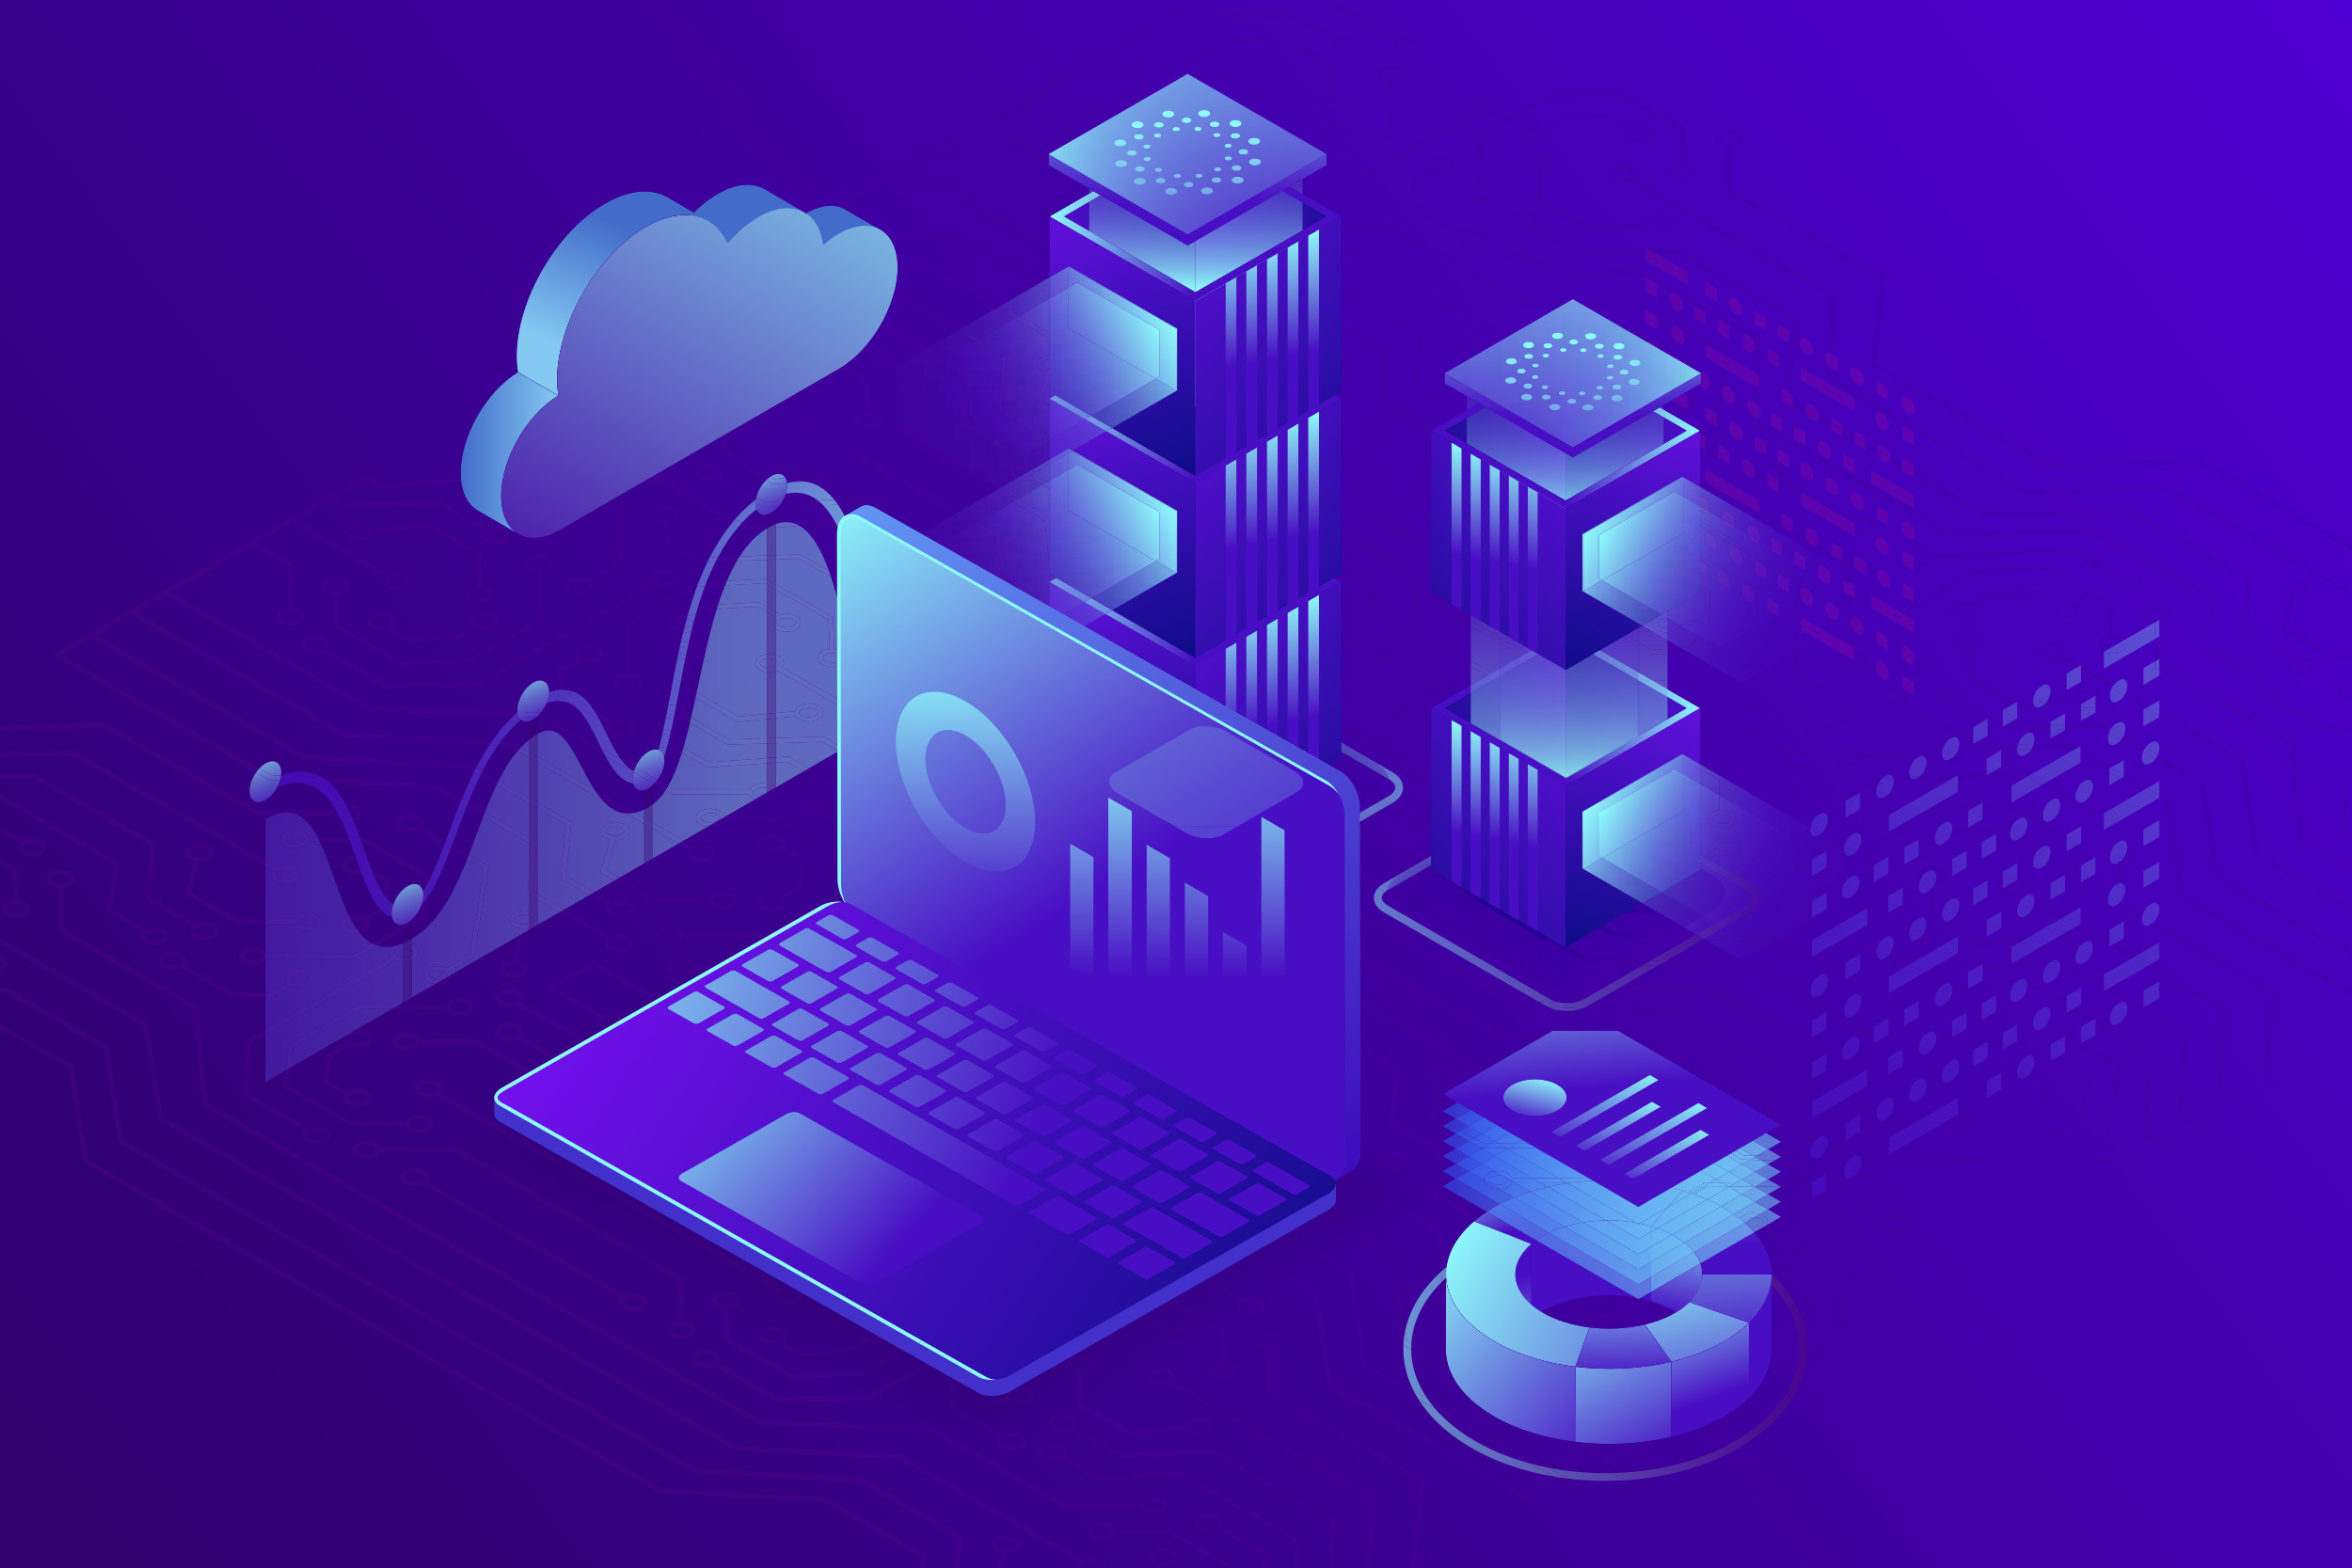 Ambient Intelligence meets Business Intelligence in the Cloud